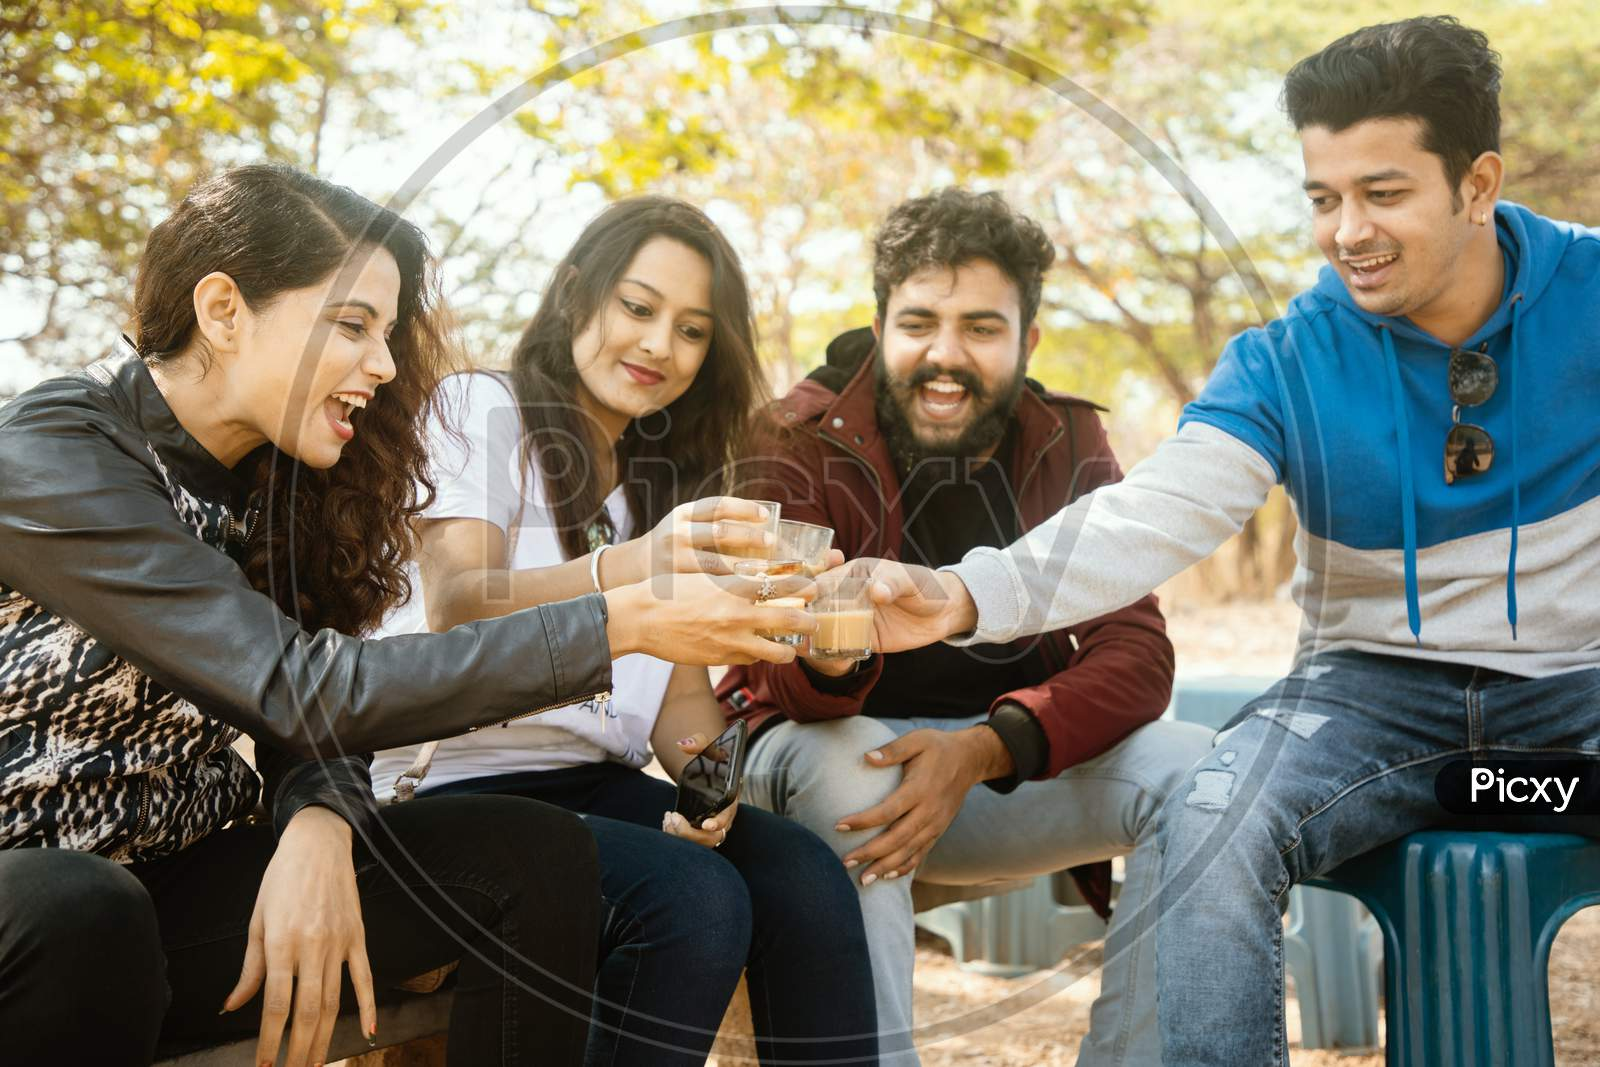 A Group of Happy Young People having Chai or Coffee At Outdoors